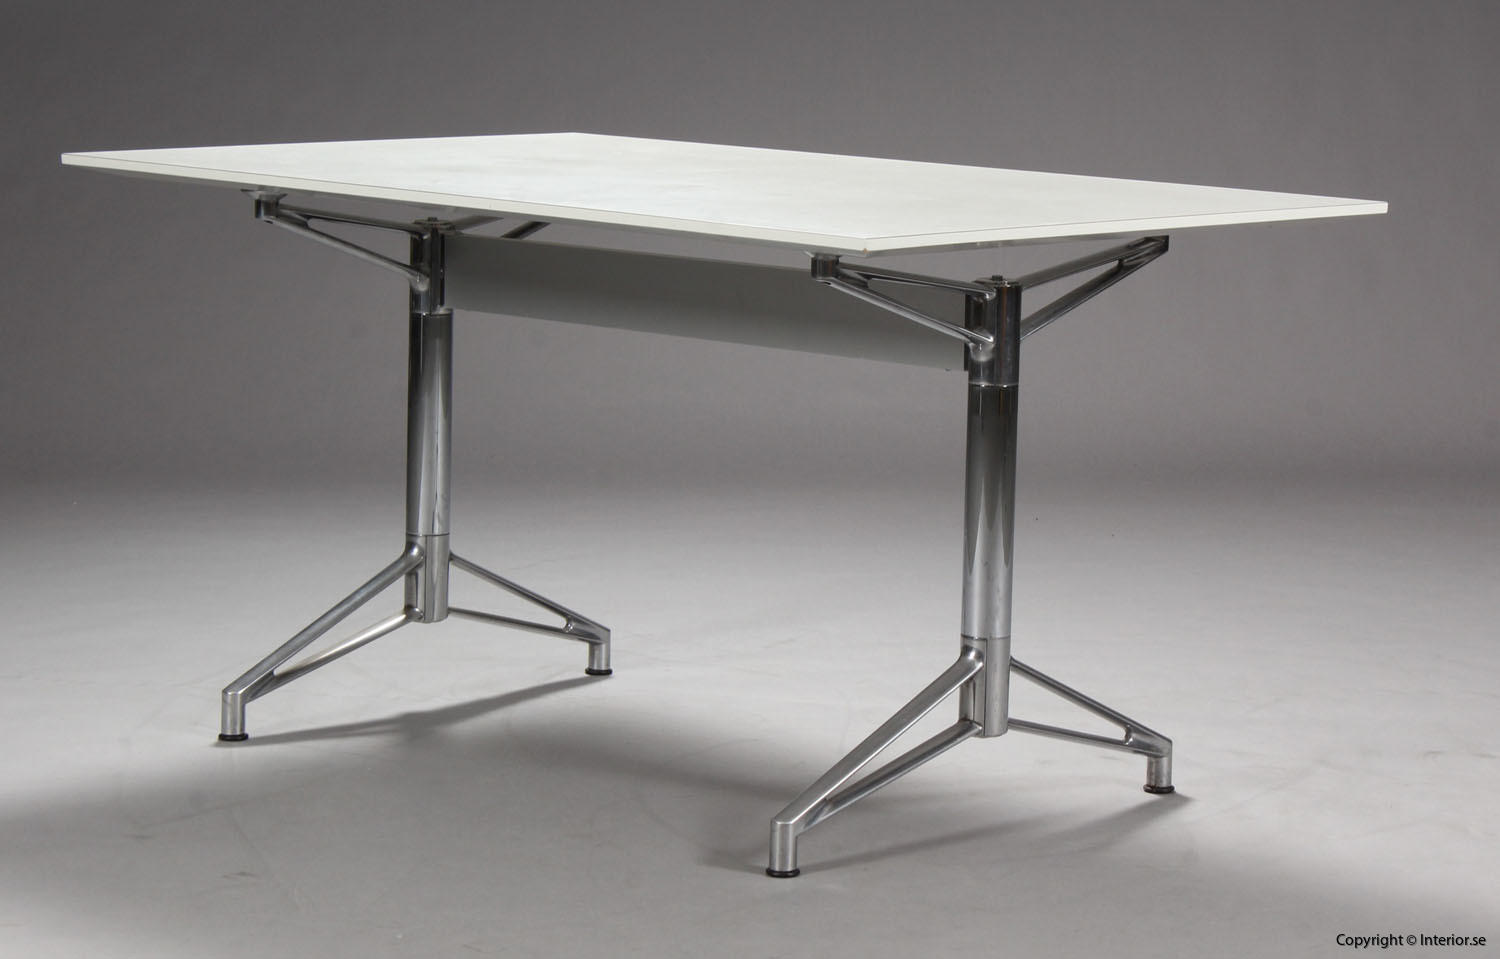 Konferensbord, Kusch & Co One Desk - 200 x 90 cm konferenztisch conference table 3